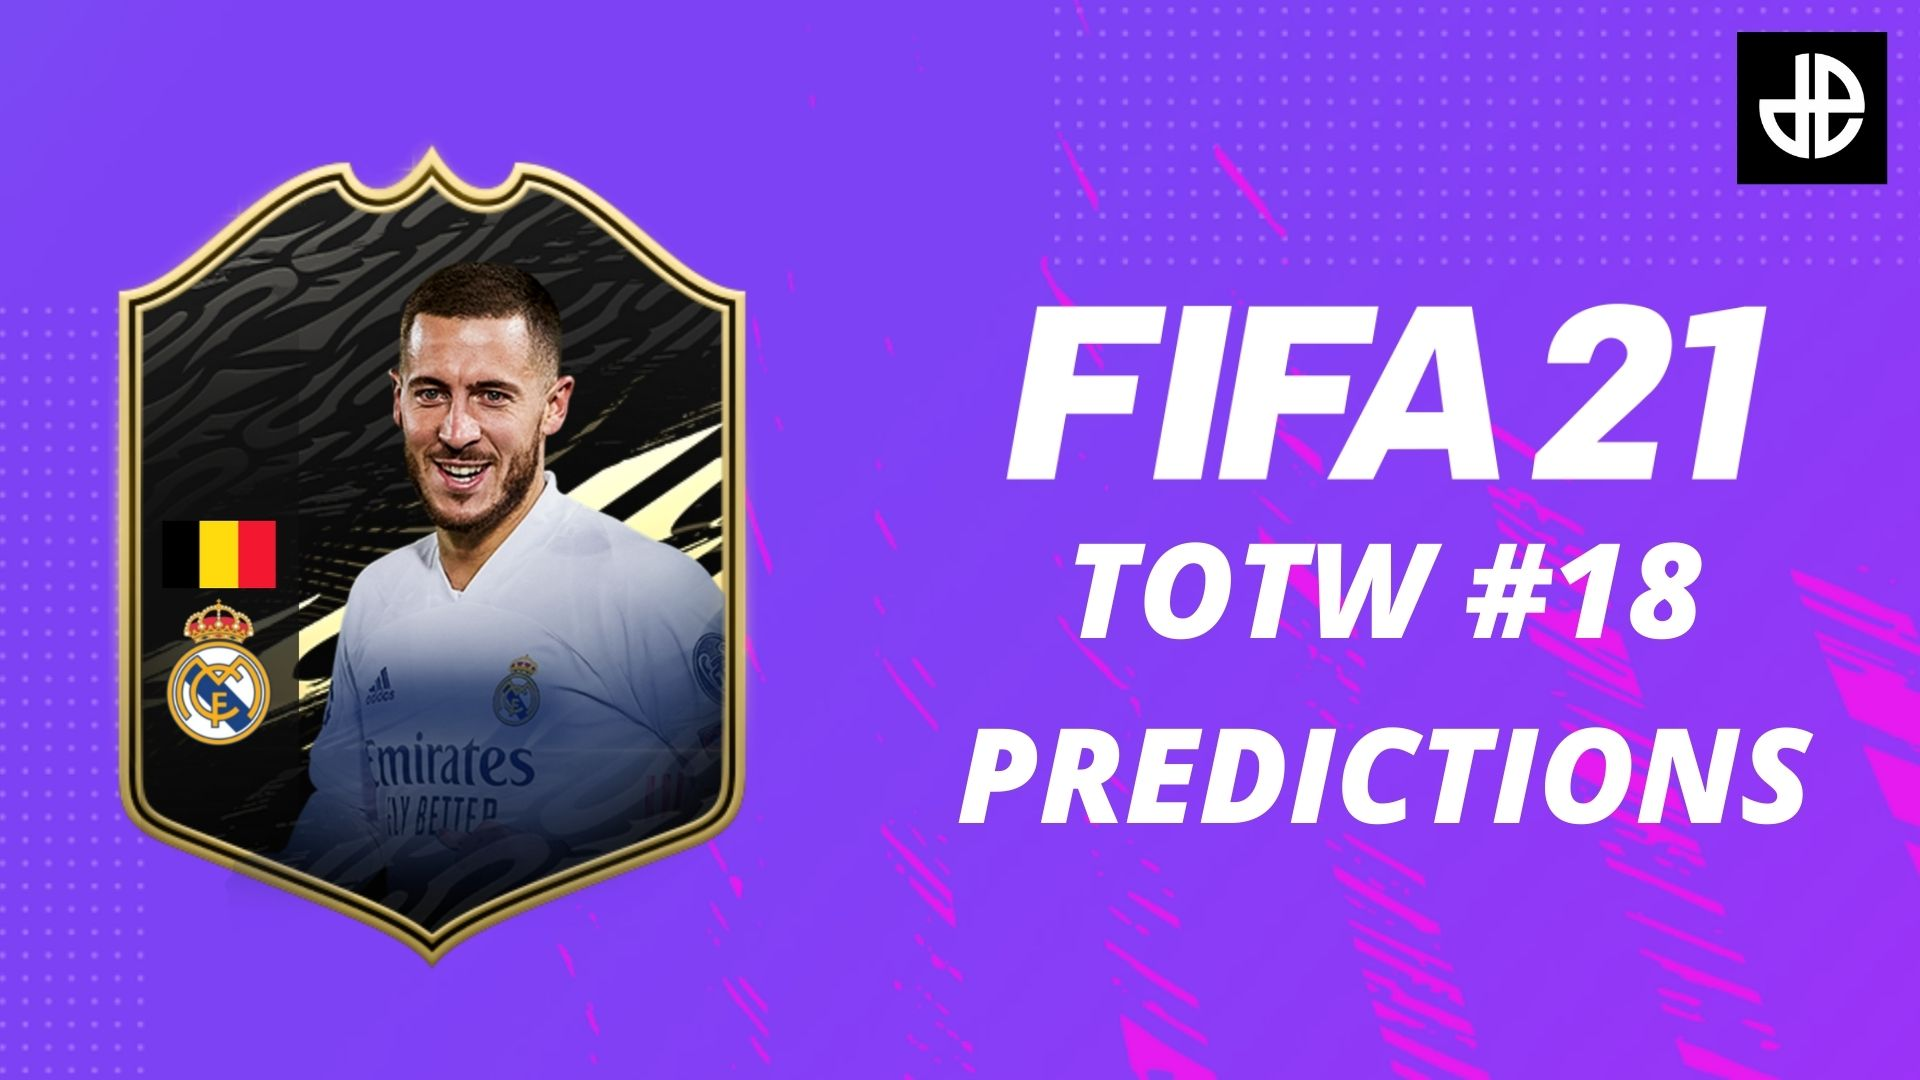 FIFA 21 TOTW 18 Predictions with Eden Hazard card